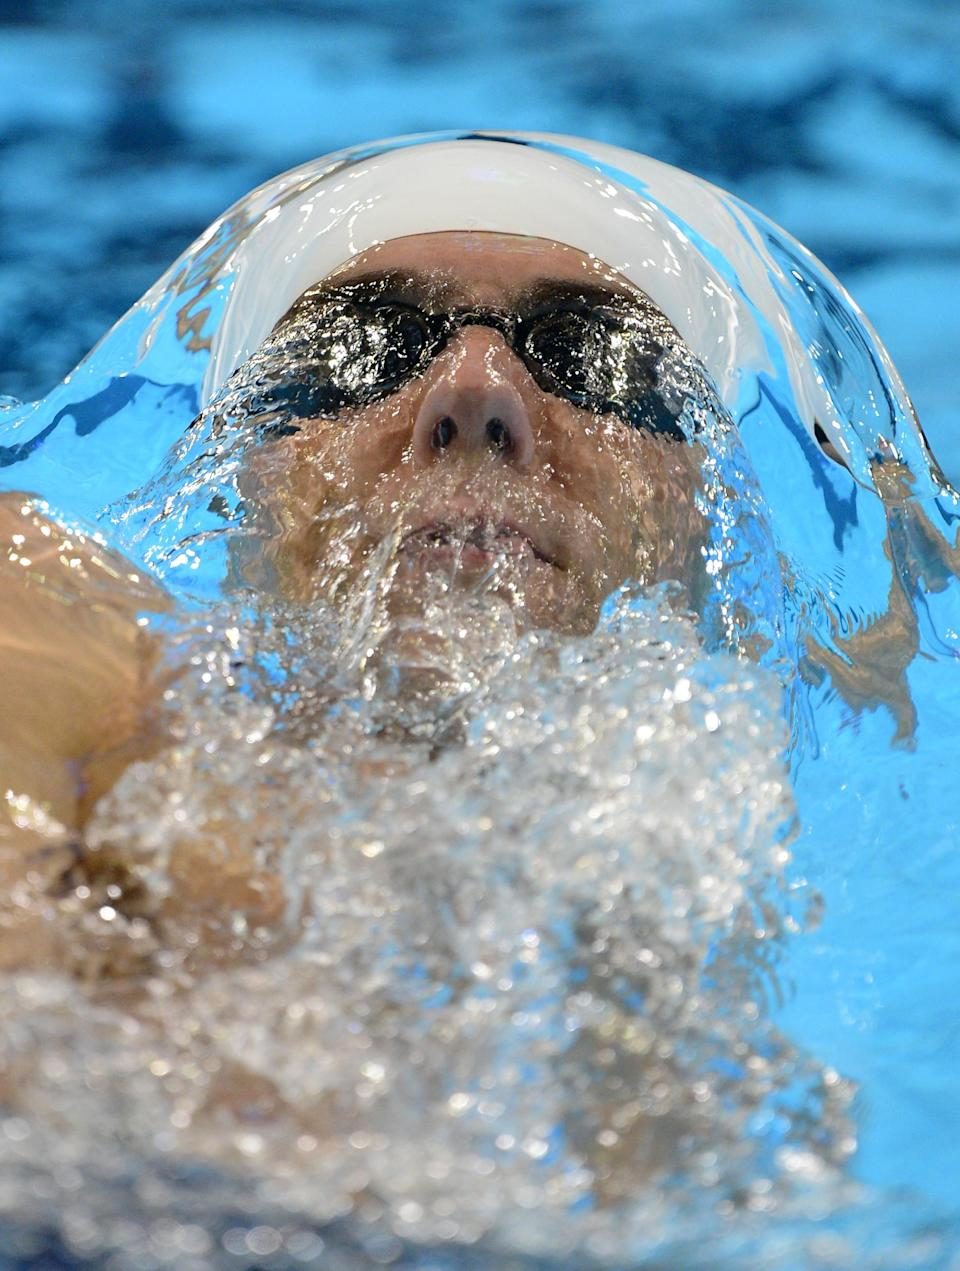 Michael Phelps swims in the men's 400-meter individual medley preliminaries at the U.S. Olympic swimming trials, Monday, June 25, 2012, in Omaha, Neb. (AP Photo/Mark J. Terrill)